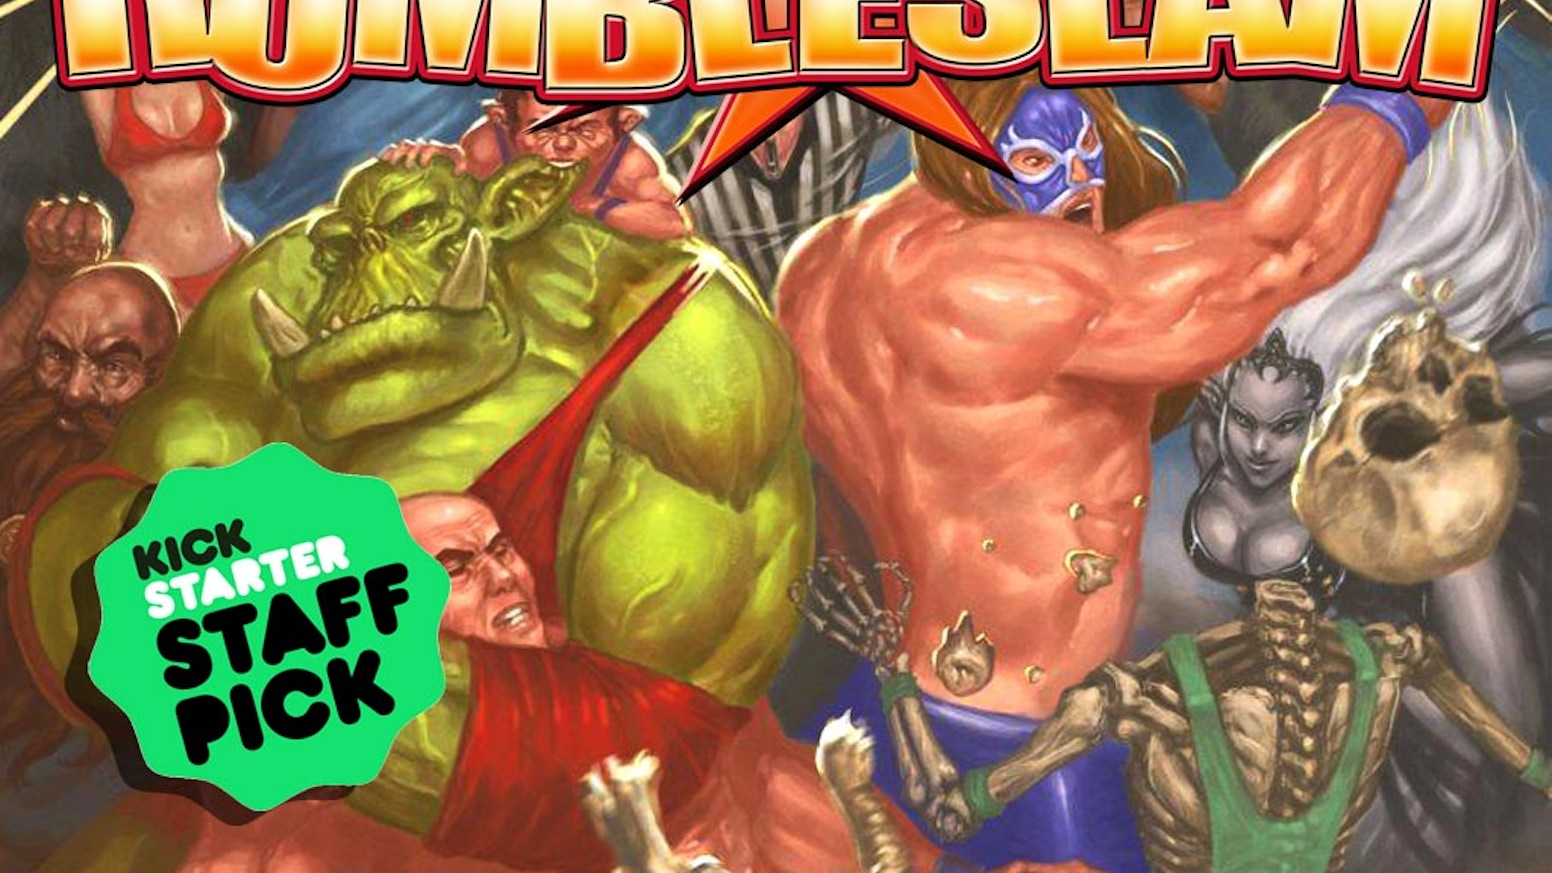 RUMBLESLAM! The fast and fun tabletop miniature game of fantasy wrestling.